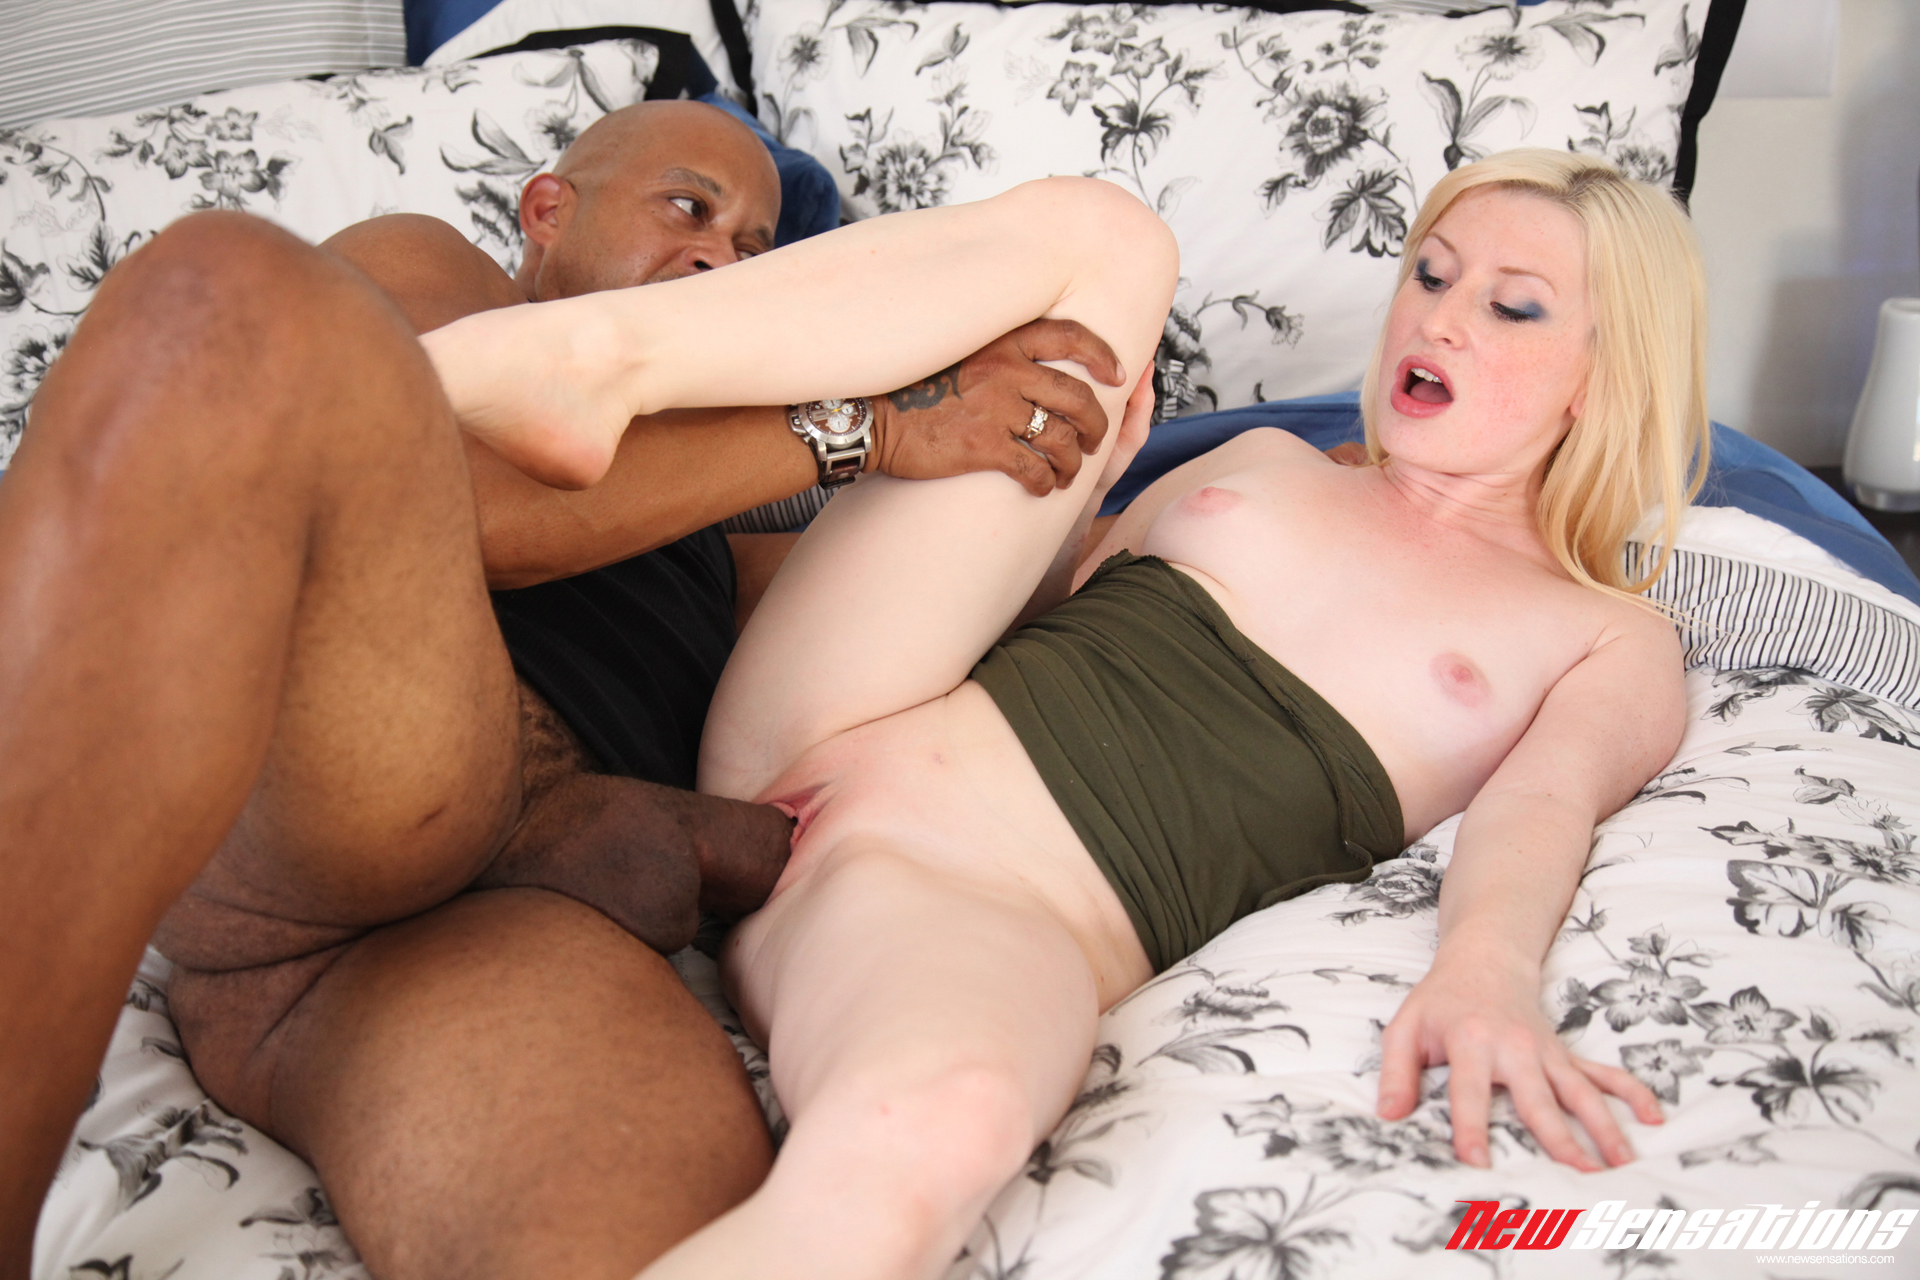 Vanessa bazooms vs will ravage and alex san palo anal 3some - 3 2